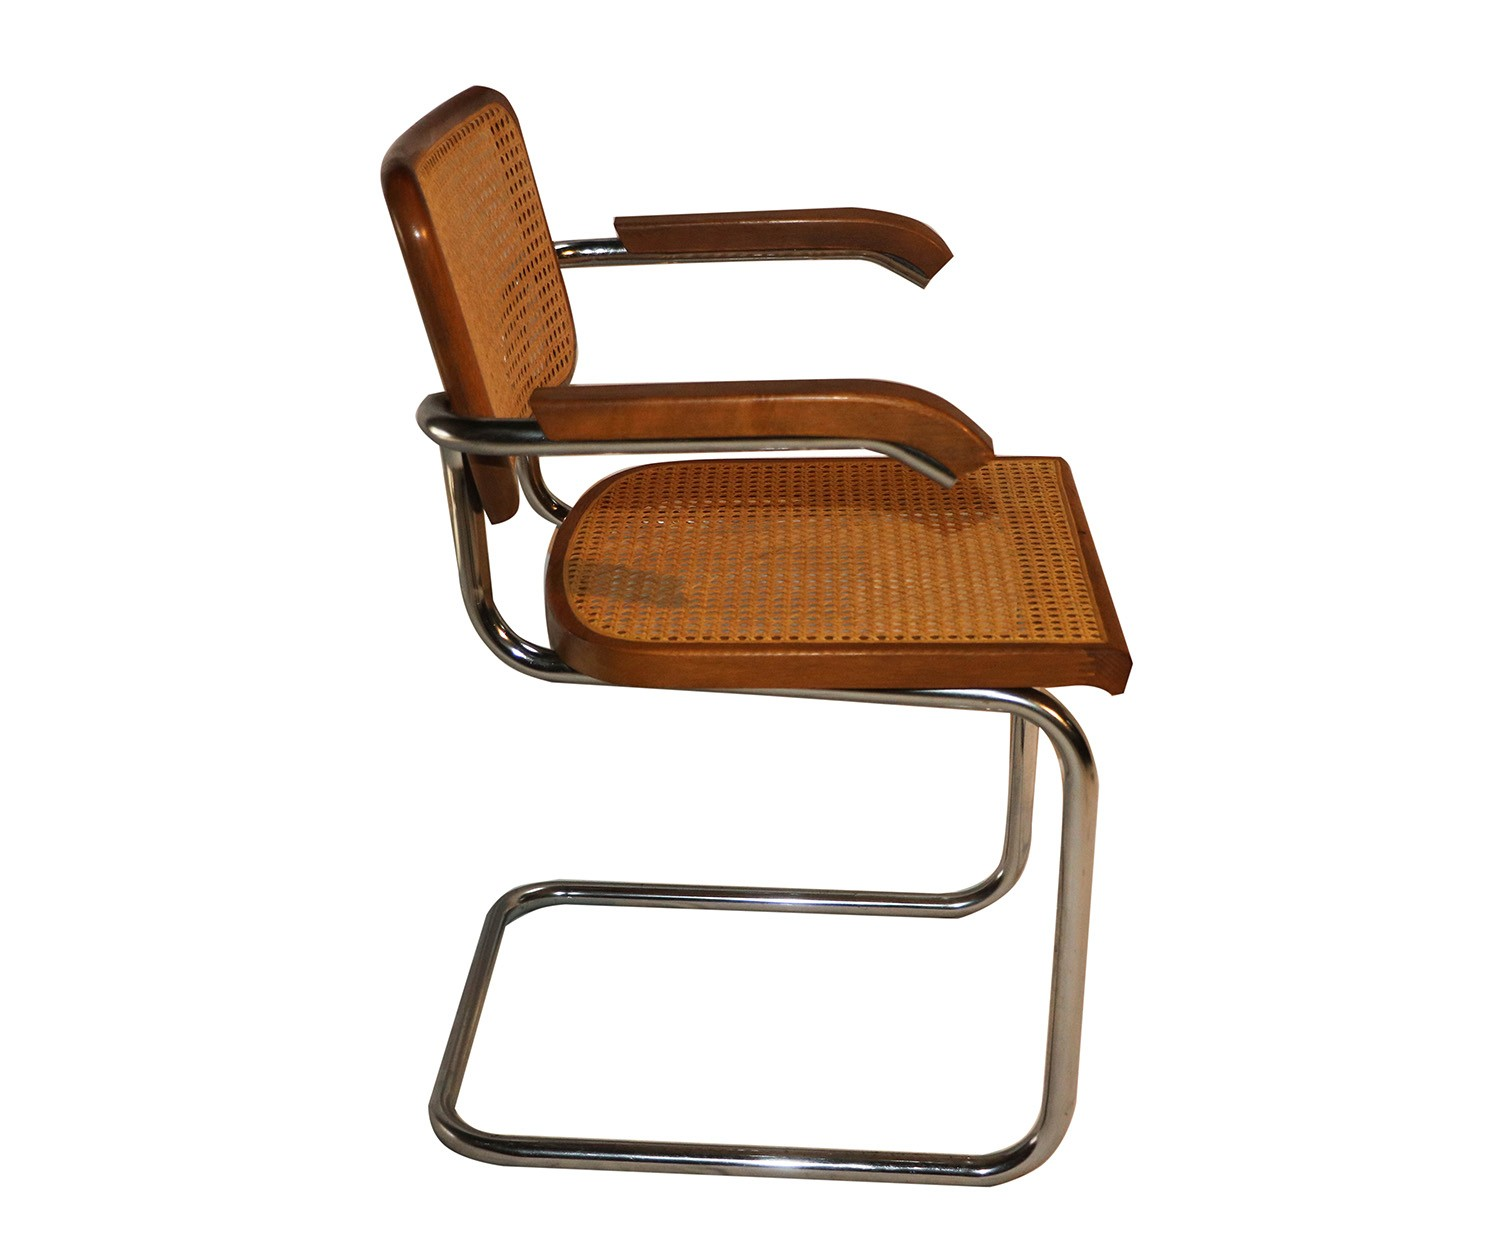 marcel breuer cesca chair with armrests cups for legs style cane arm chairs